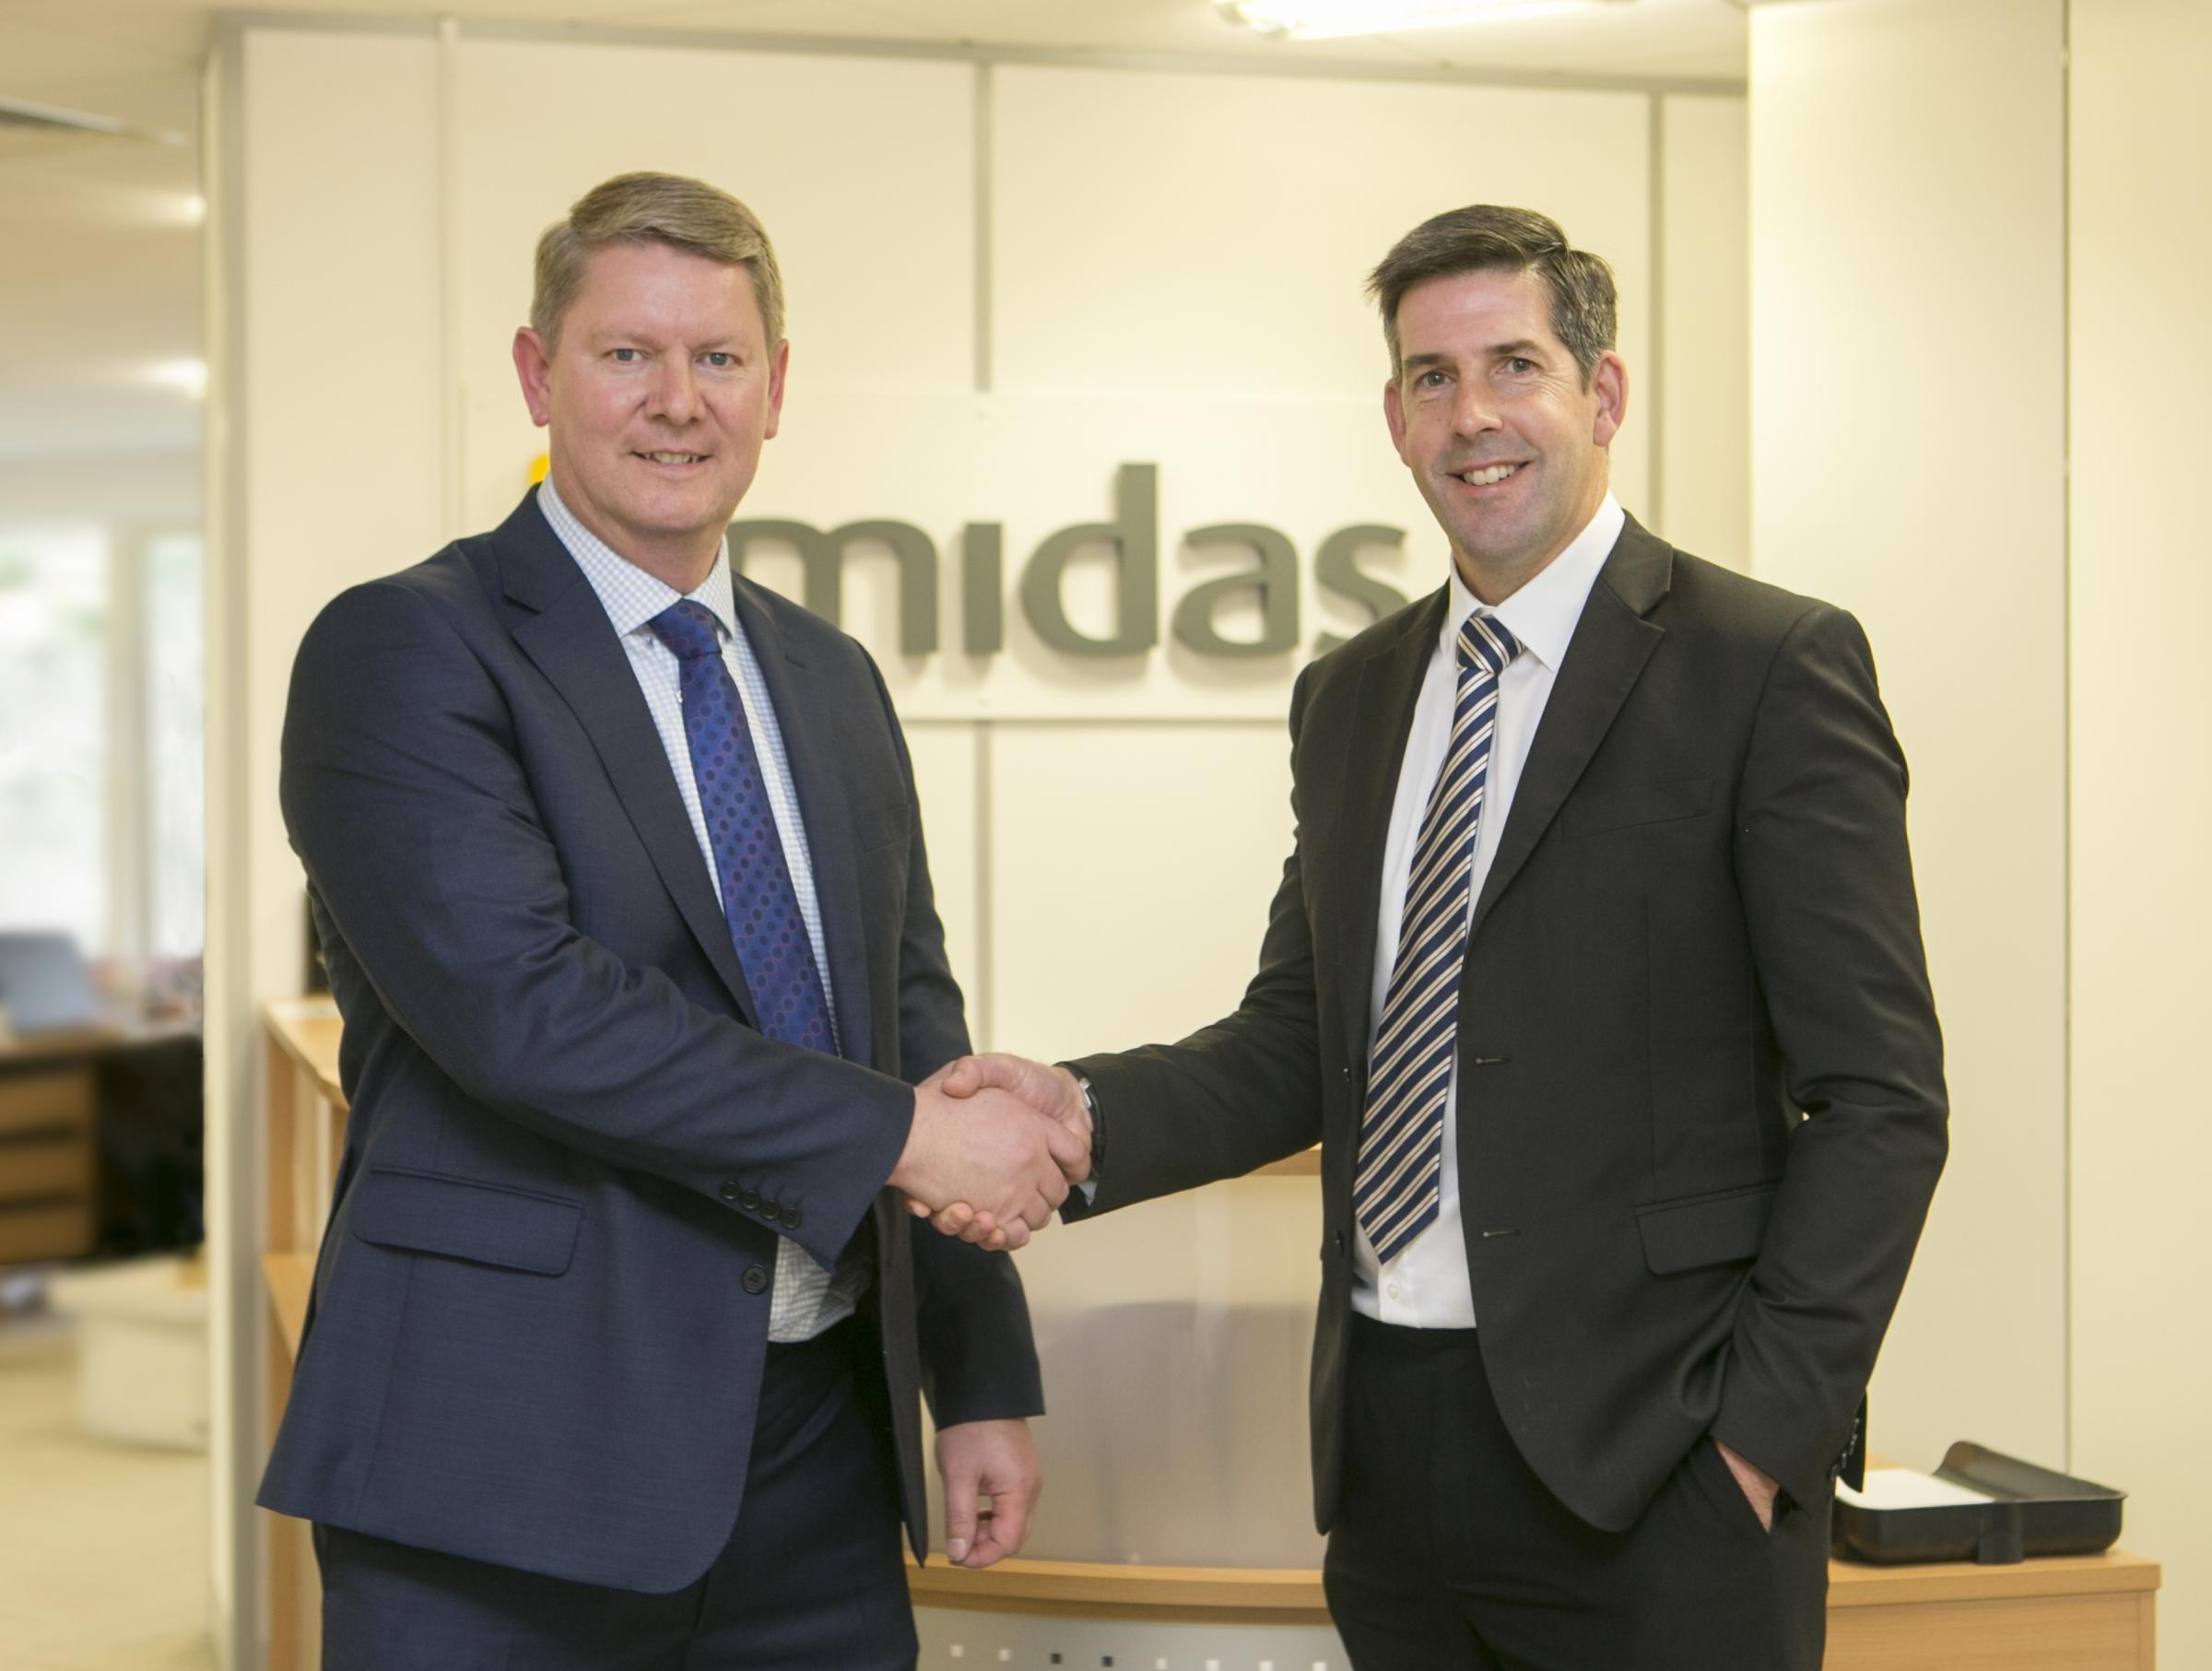 Richard Ellis (left)  is welcomed back to Midas Construction by Peter Whitmore, divisional director for the southern region